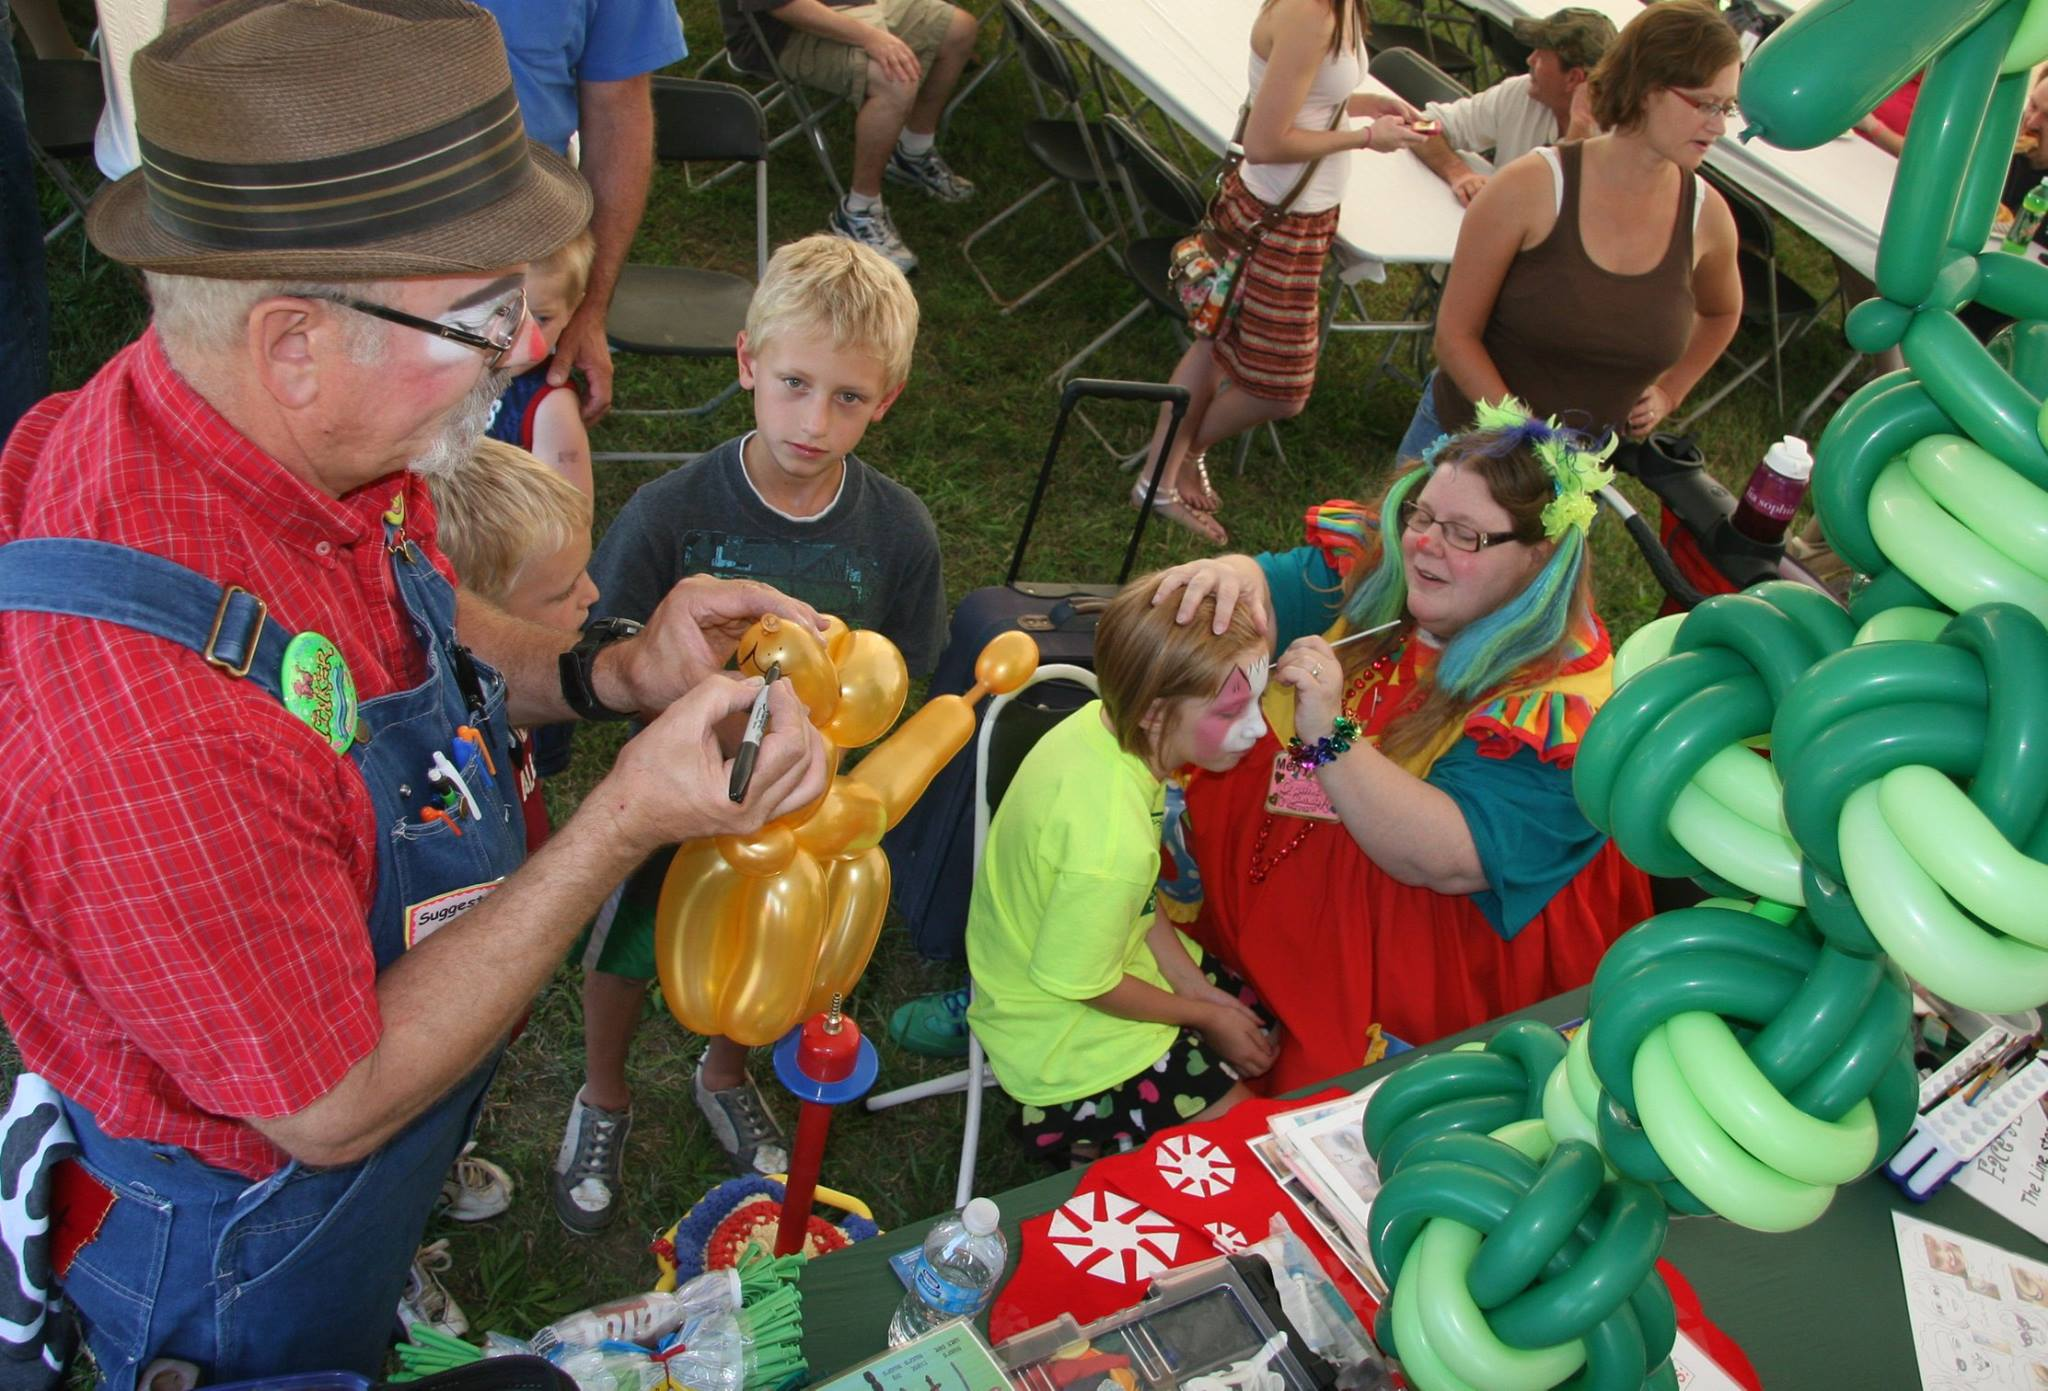 The St. Joe Pickle Festival features tons of fun for the whole family!